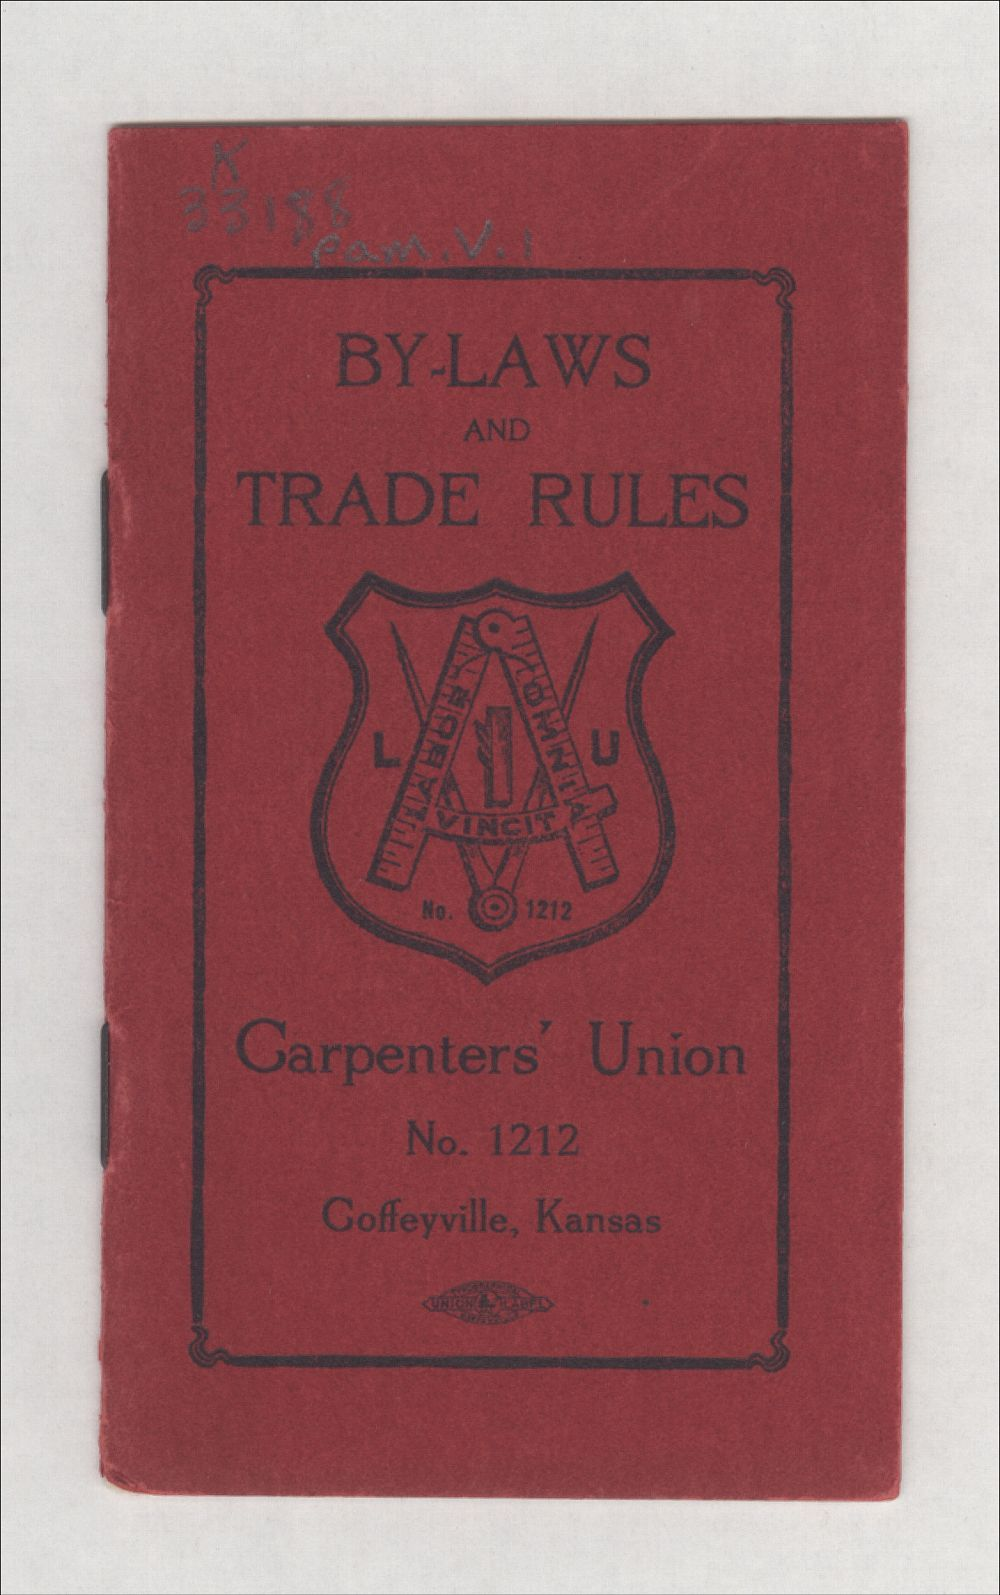 By-laws and trade rules of Carpenter's Union No. 1212 - 1